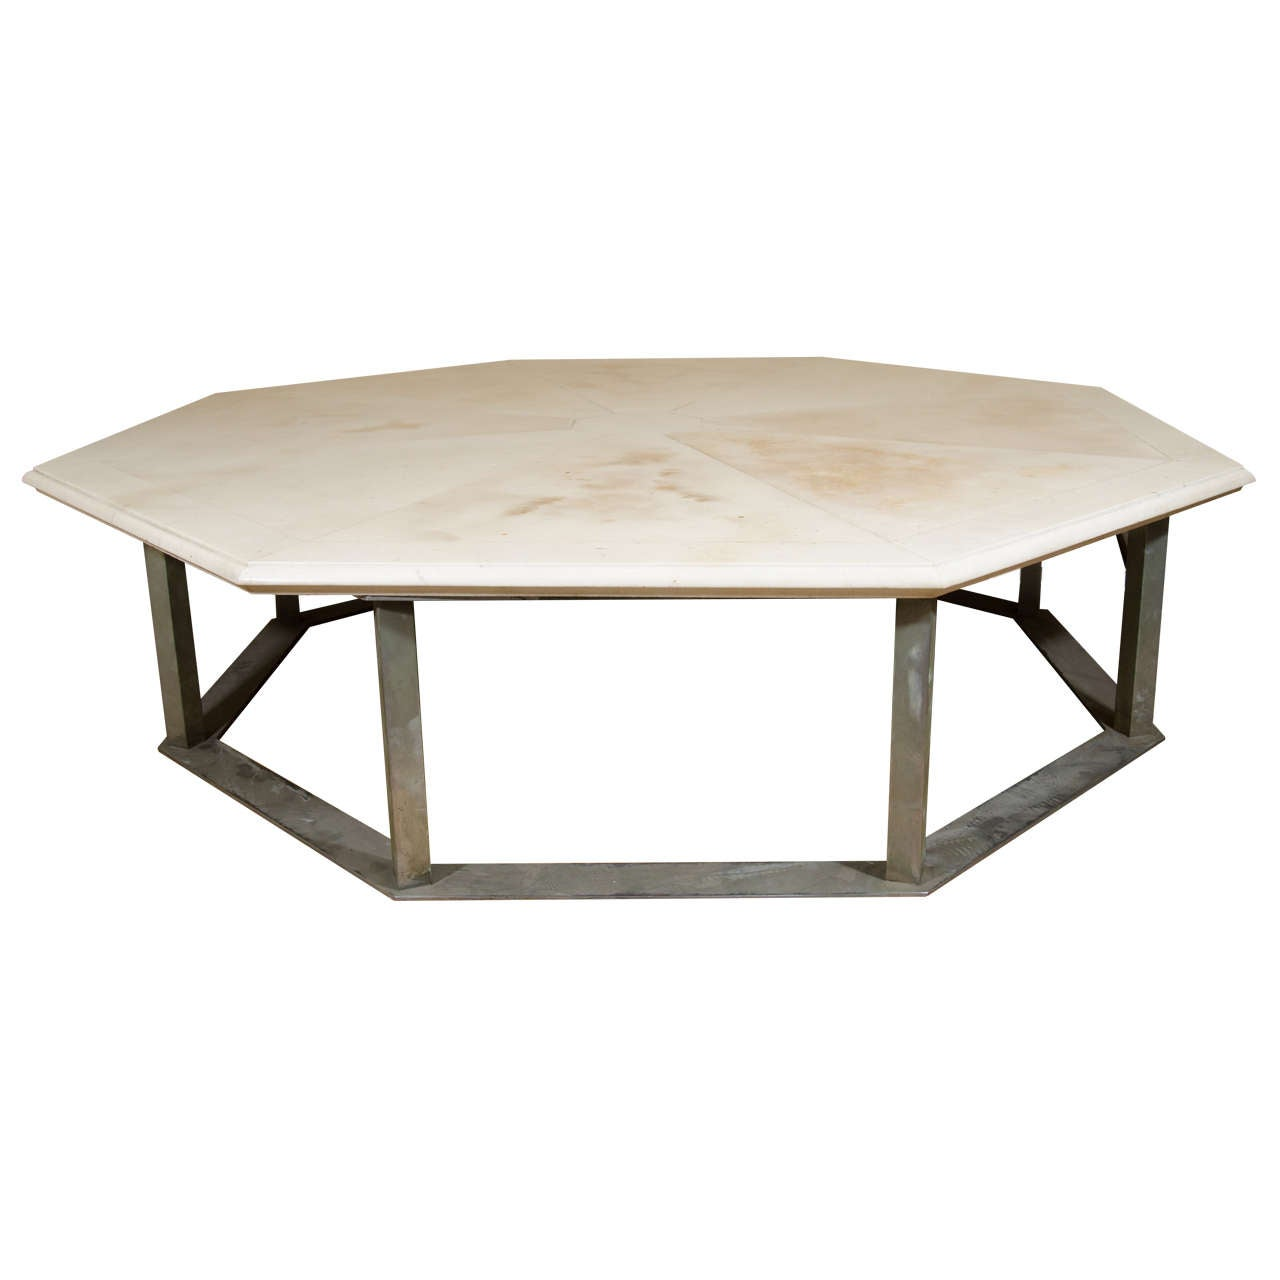 A Midcentury Marble And Steel Octagonal Coffee Table By George Ciancimino 1